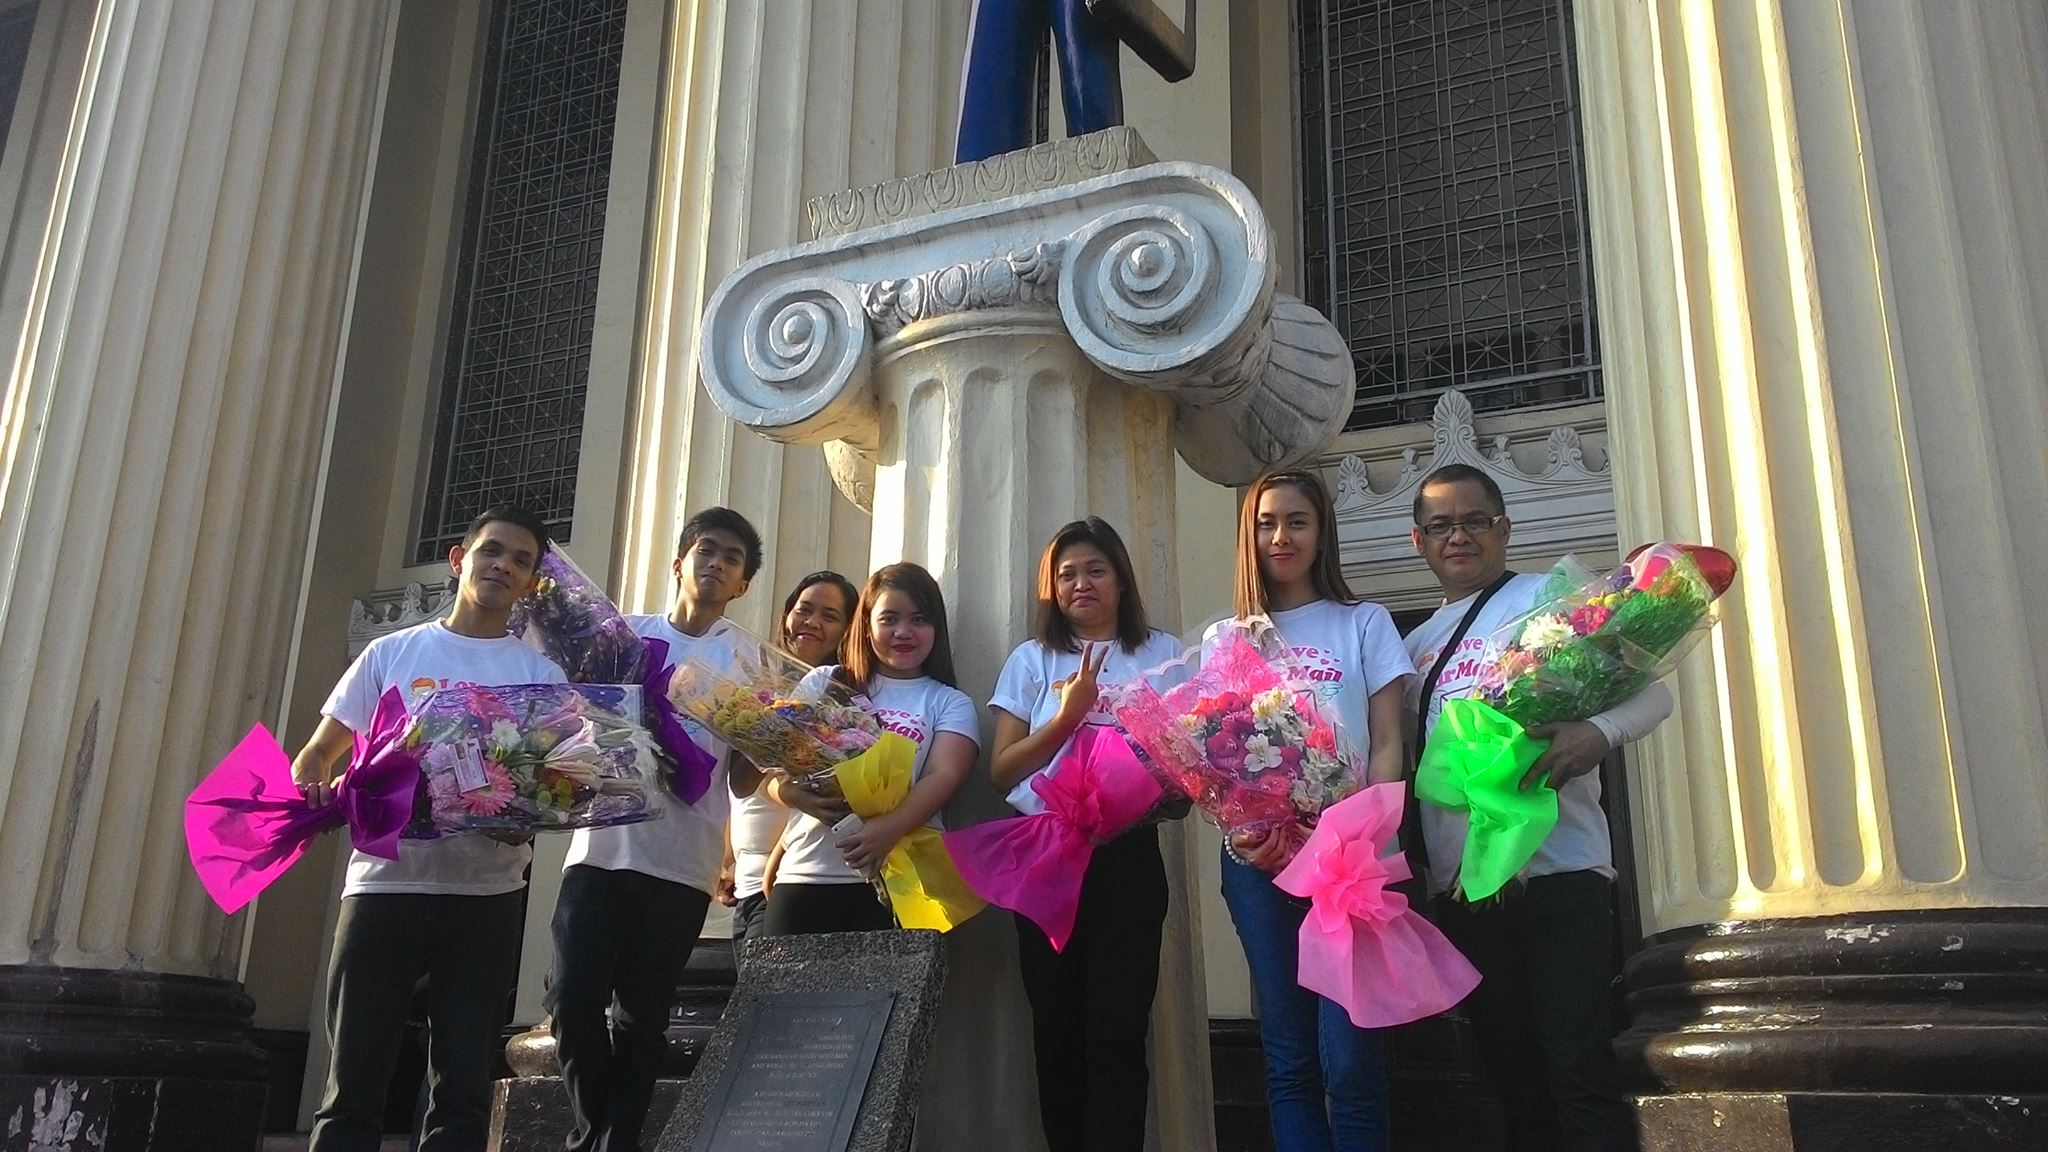 """Postmen in the Philippines will play Cupid this Valentine's Day through its """"love express"""" delivery campaign, said the Philippine Postal Corporation (Philpost) on Thursday, adding it is accepting flowers, chocolates and """"real"""" greeting cards for personal delivery this Valentine's Day. (Photo: Boyet London/Facebook)"""